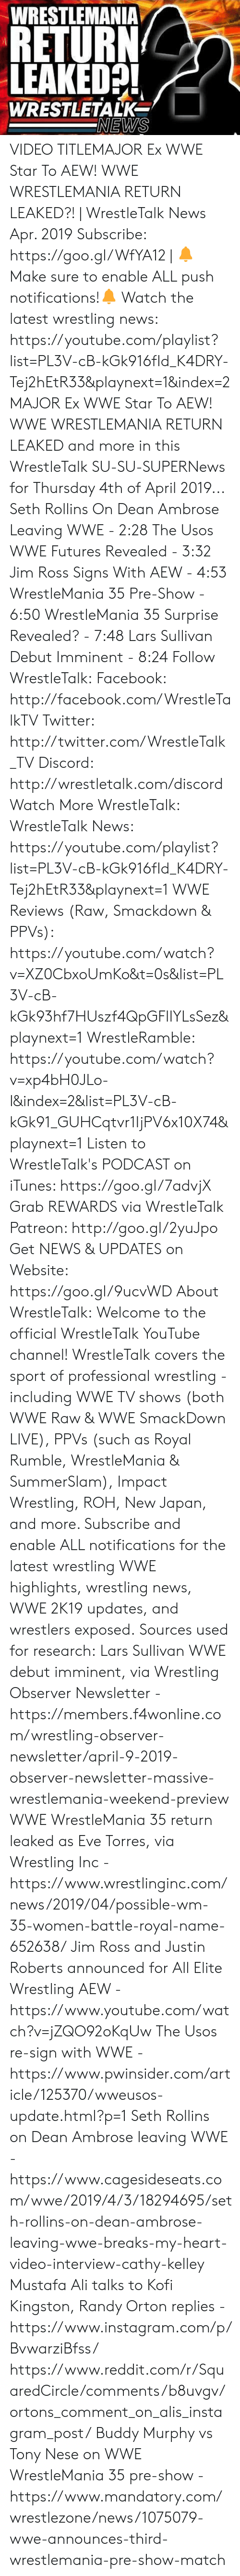 raw wwe: WRESTLEMANIA  RETURN  LEAKED!  WRESTLETALKe  NEWS VIDEO TITLEMAJOR Ex WWE Star To AEW! WWE WRESTLEMANIA RETURN LEAKED?! | WrestleTalk News Apr. 2019 Subscribe: https://goo.gl/WfYA12 | 🔔Make sure to enable ALL push notifications!🔔 Watch the latest wrestling news: https://youtube.com/playlist?list=PL3V-cB-kGk916fId_K4DRY-Tej2hEtR33&playnext=1&index=2    MAJOR Ex WWE Star To AEW! WWE WRESTLEMANIA RETURN LEAKED and more in this WrestleTalk SU-SU-SUPERNews for Thursday 4th of April 2019...  Seth Rollins On Dean Ambrose Leaving WWE - 2:28 The Usos WWE Futures Revealed - 3:32 Jim Ross Signs With AEW - 4:53 WrestleMania 35 Pre-Show - 6:50 WrestleMania 35 Surprise Revealed? - 7:48 Lars Sullivan Debut Imminent - 8:24  Follow WrestleTalk: Facebook: http://facebook.com/WrestleTalkTV Twitter: http://twitter.com/WrestleTalk_TV Discord: http://wrestletalk.com/discord  Watch More WrestleTalk: WrestleTalk News: https://youtube.com/playlist?list=PL3V-cB-kGk916fId_K4DRY-Tej2hEtR33&playnext=1  WWE Reviews (Raw, Smackdown & PPVs): https://youtube.com/watch?v=XZ0CbxoUmKo&t=0s&list=PL3V-cB-kGk93hf7HUszf4QpGFIIYLsSez&playnext=1  WrestleRamble: https://youtube.com/watch?v=xp4bH0JLo-I&index=2&list=PL3V-cB-kGk91_GUHCqtvr1IjPV6x10X74&playnext=1   Listen to WrestleTalk's PODCAST on iTunes: https://goo.gl/7advjX Grab REWARDS via WrestleTalk Patreon: http://goo.gl/2yuJpo Get NEWS & UPDATES on Website: https://goo.gl/9ucvWD  About WrestleTalk: Welcome to the official WrestleTalk YouTube channel! WrestleTalk covers the sport of professional wrestling - including WWE TV shows (both WWE Raw & WWE SmackDown LIVE), PPVs (such as Royal Rumble, WrestleMania & SummerSlam), Impact Wrestling, ROH, New Japan, and more. Subscribe and enable ALL notifications for the latest wrestling WWE highlights, wrestling news, WWE 2K19 updates, and wrestlers exposed.  Sources used for research: Lars Sullivan WWE debut imminent, via Wrestling Observer Newsletter - https://members.f4wonline.com/wrestling-observer-newsletter/april-9-2019-observer-newsletter-massive-wrestlemania-weekend-preview WWE WrestleMania 35 return leaked as Eve Torres, via Wrestling Inc - https://www.wrestlinginc.com/news/2019/04/possible-wm-35-women-battle-royal-name-652638/ Jim Ross and Justin Roberts announced for All Elite Wrestling AEW - https://www.youtube.com/watch?v=jZQO92oKqUw The Usos re-sign with WWE - https://www.pwinsider.com/article/125370/wweusos-update.html?p=1 Seth Rollins on Dean Ambrose leaving WWE - https://www.cagesideseats.com/wwe/2019/4/3/18294695/seth-rollins-on-dean-ambrose-leaving-wwe-breaks-my-heart-video-interview-cathy-kelley Mustafa Ali talks to Kofi Kingston, Randy Orton replies - https://www.instagram.com/p/BvwarziBfss/ https://www.reddit.com/r/SquaredCircle/comments/b8uvgv/ortons_comment_on_alis_instagram_post/ Buddy Murphy vs Tony Nese on WWE WrestleMania 35 pre-show - https://www.mandatory.com/wrestlezone/news/1075079-wwe-announces-third-wrestlemania-pre-show-match